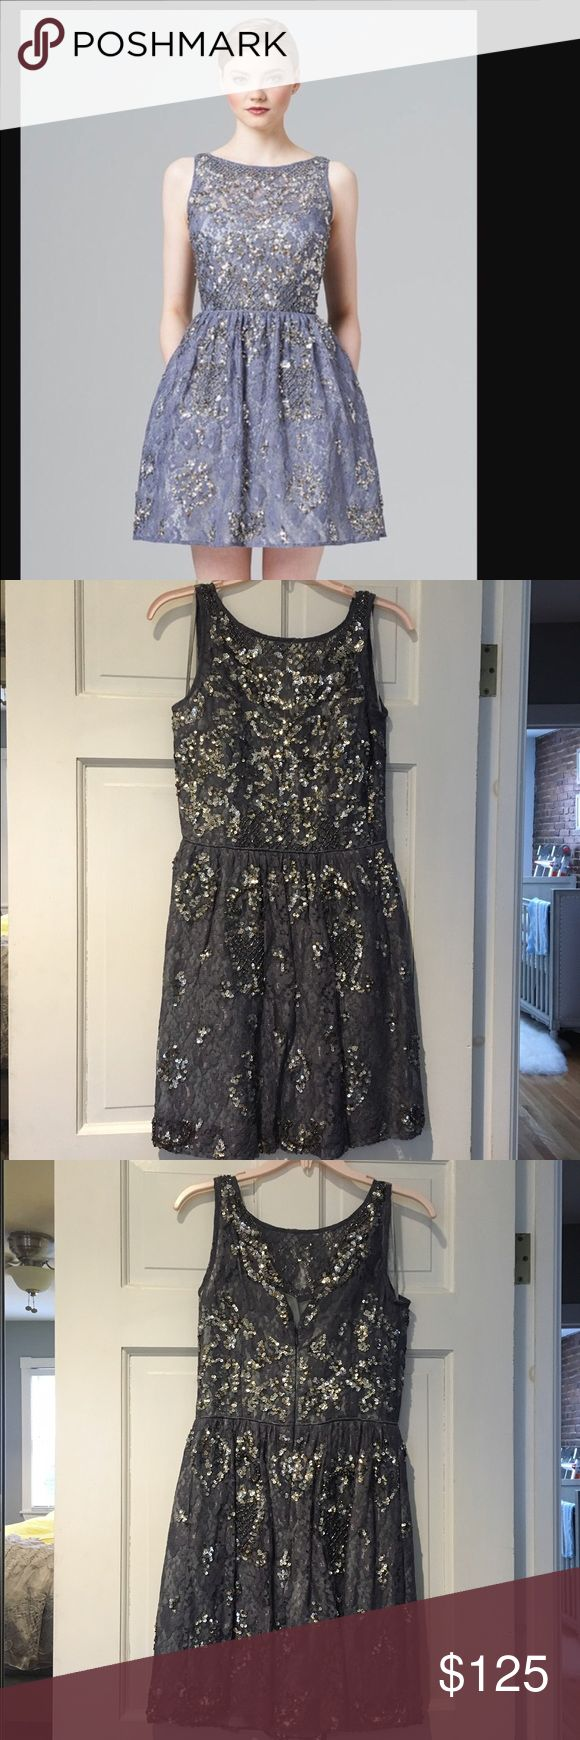 Aidan Mattox Charcoal/Blue Sequin Dress - size 2 Aidan Mattox Charcoal/Blue Sequin Dress - size 2 only worn once and in perfect condition! Aidan Mattox Dresses